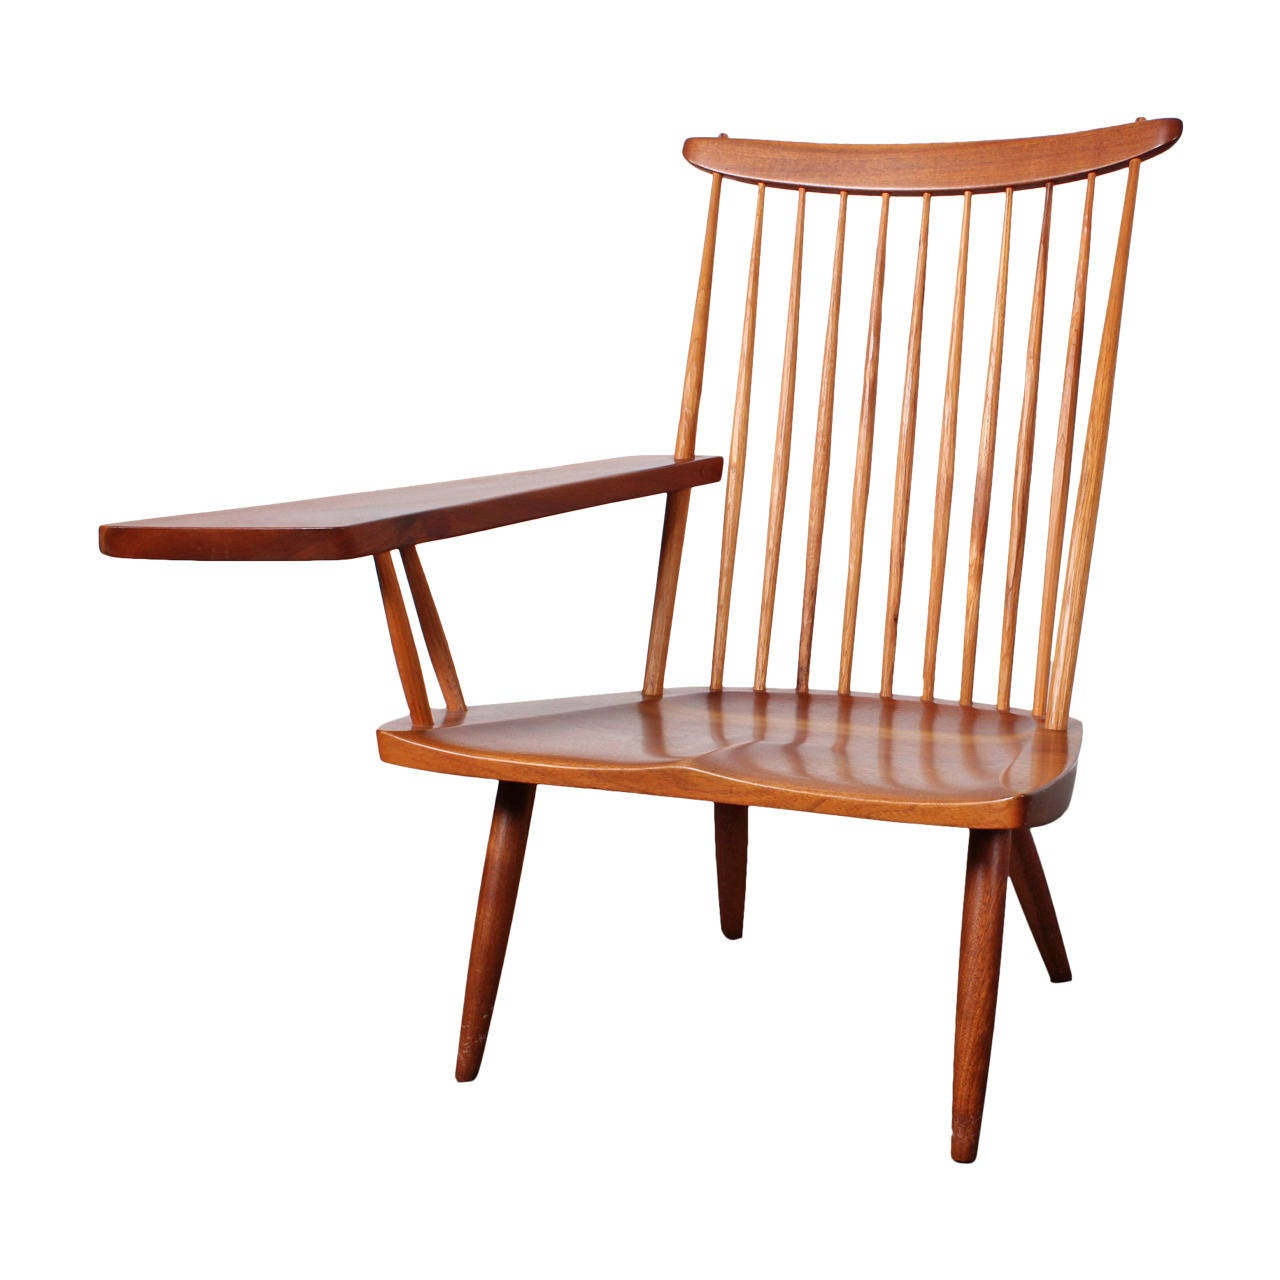 Single arm lounge chair by george nakashima at 1stdibs for Single lounge chairs for sale